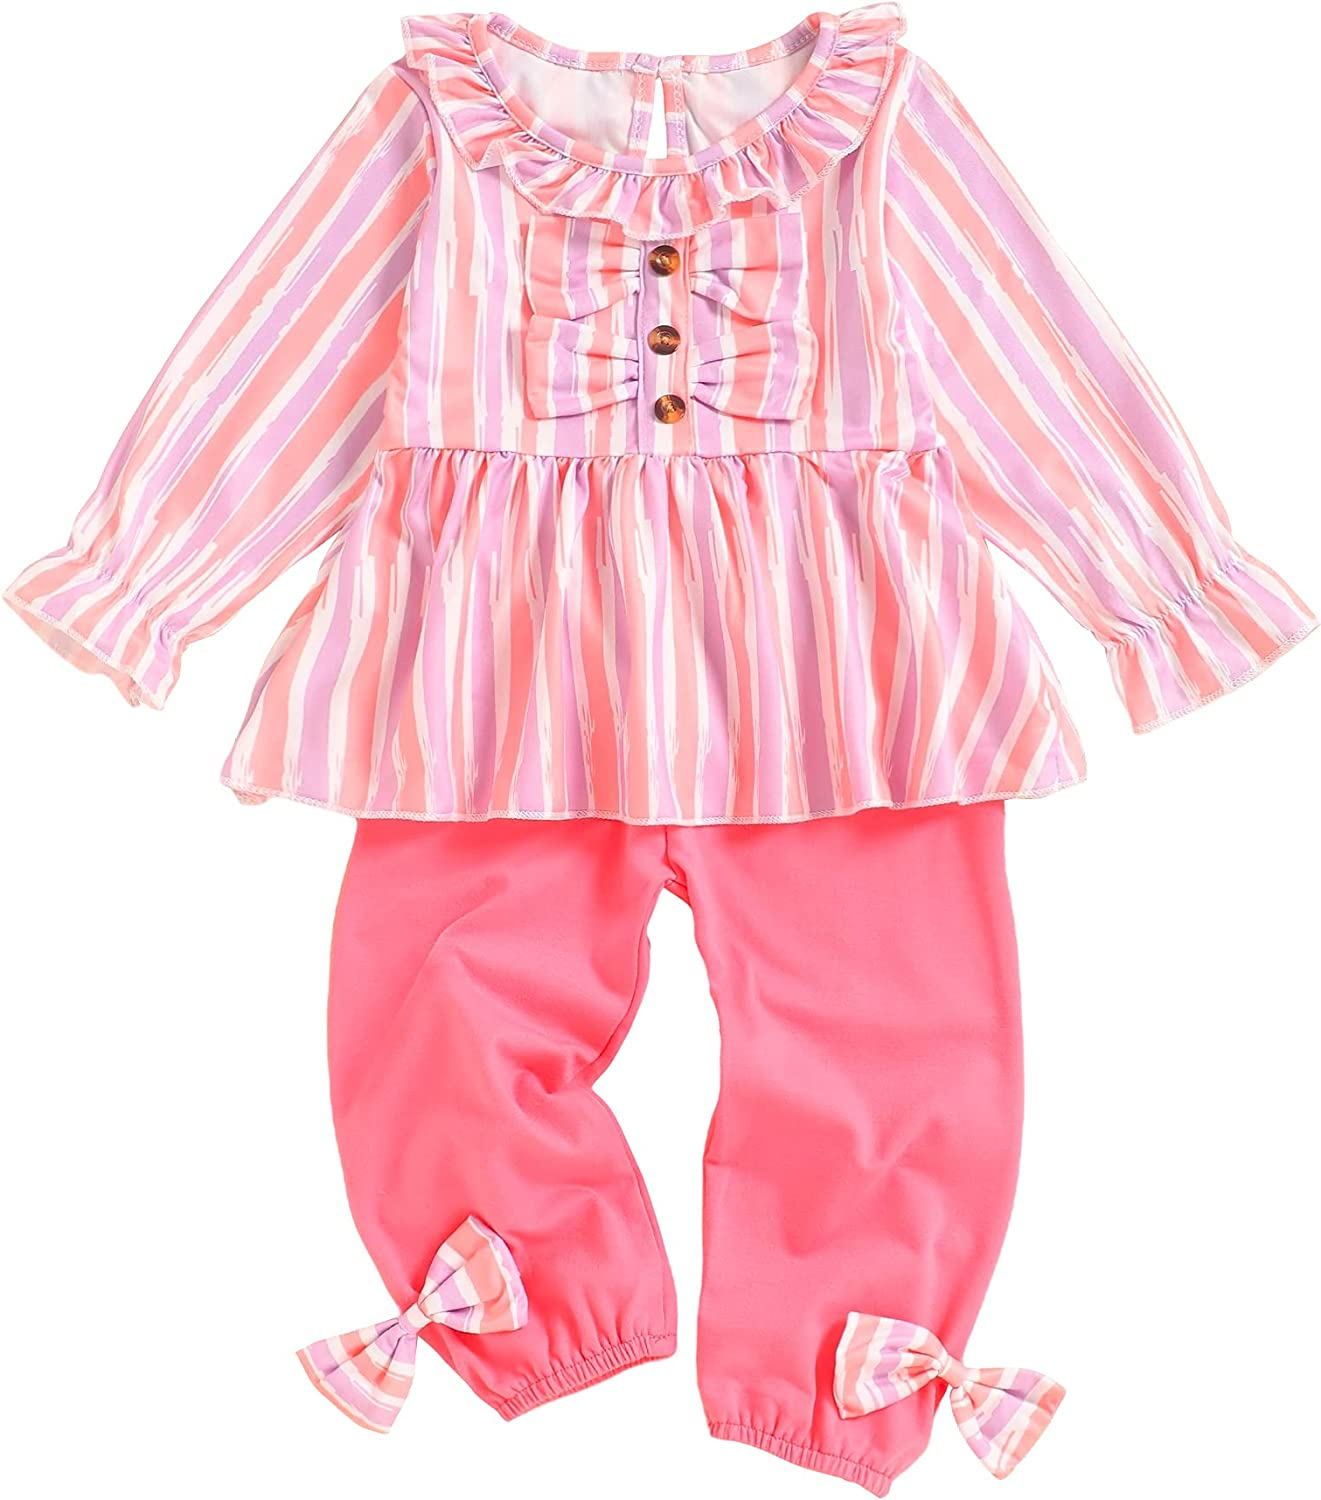 Kids Toddler Girl Clothes Outfit Floral Little Outlet SALE Infant All items free shipping